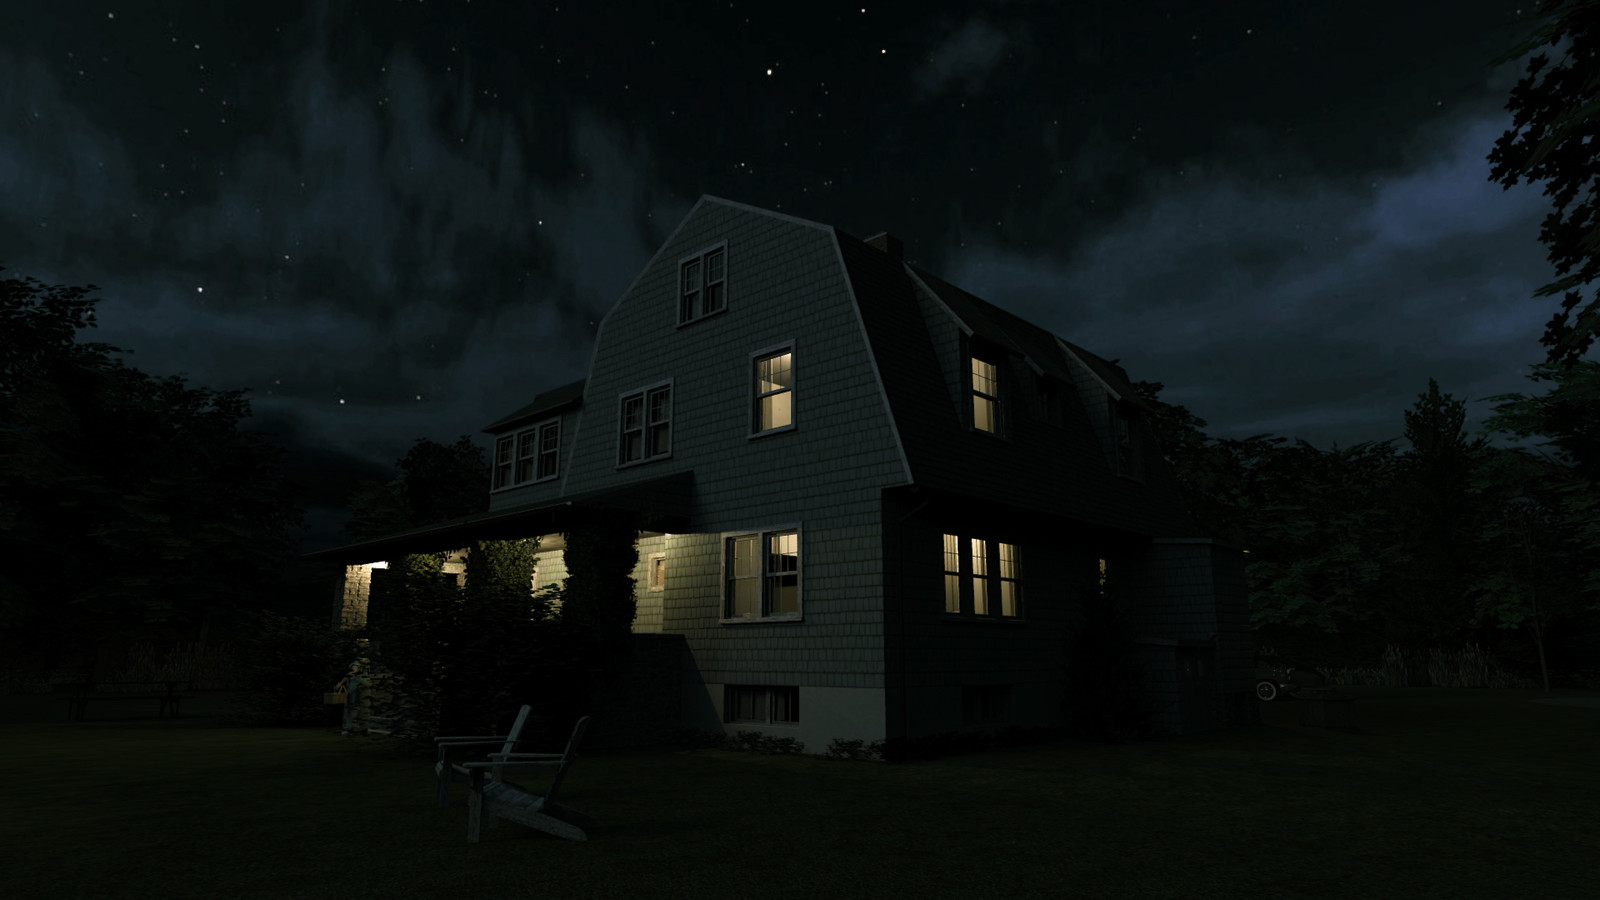 """""""Mason Farm - Moonlight Melodies"""" Full Moon Collection  34 Masonfarm HD1080 24 - iP Kodac  """"SketchUp to LayOut"""" The Mason Farm Renders for the launching of the new book """"SketchUp to LayOut"""" http://bit.ly/2j0d0Wh by MasterSketchup."""